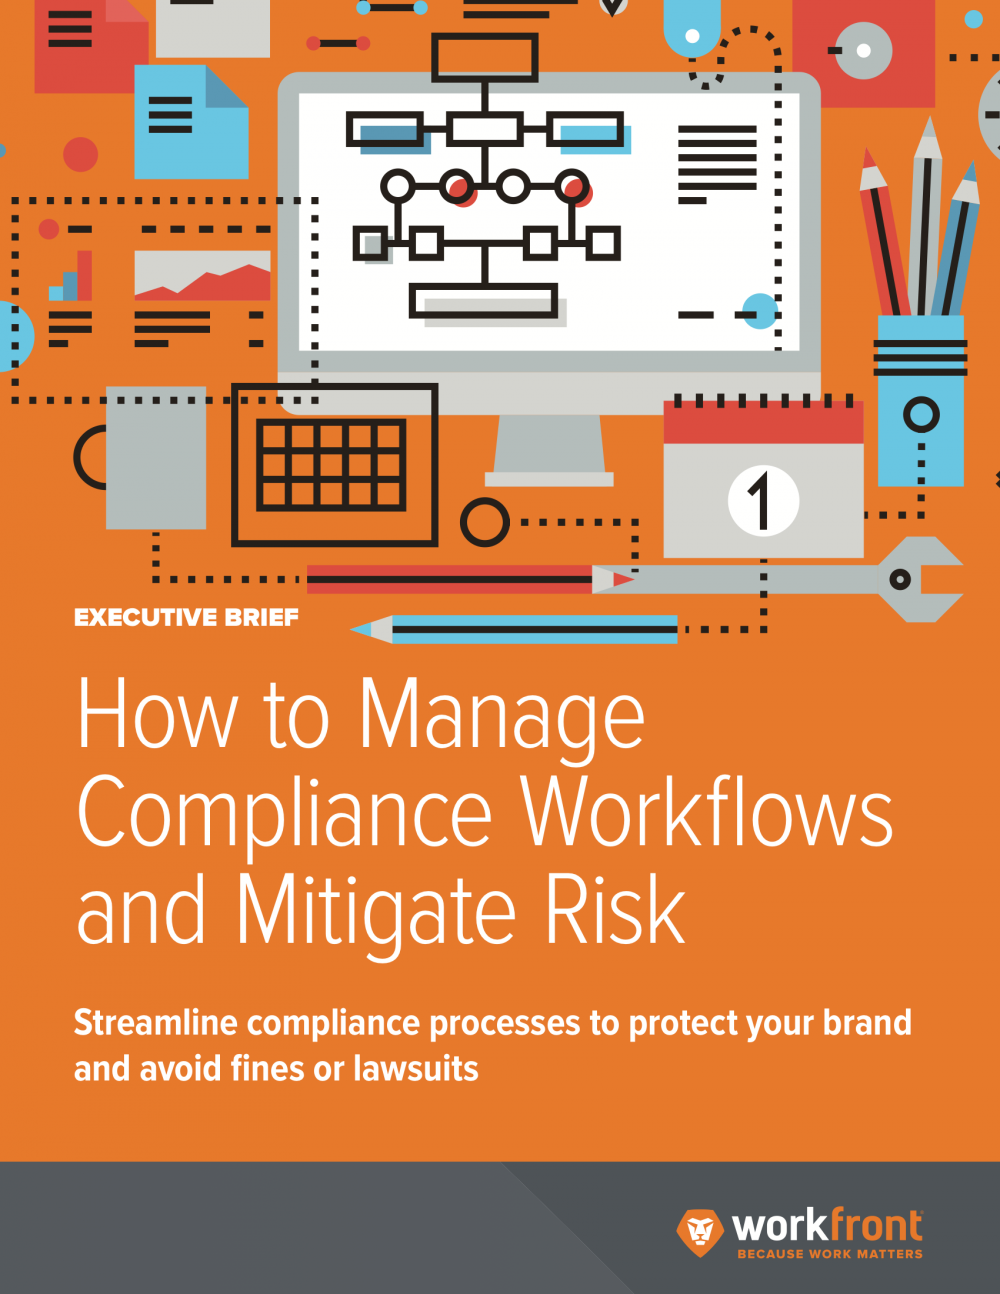 How to Manage Compliance Workflows and Mitigate Risk